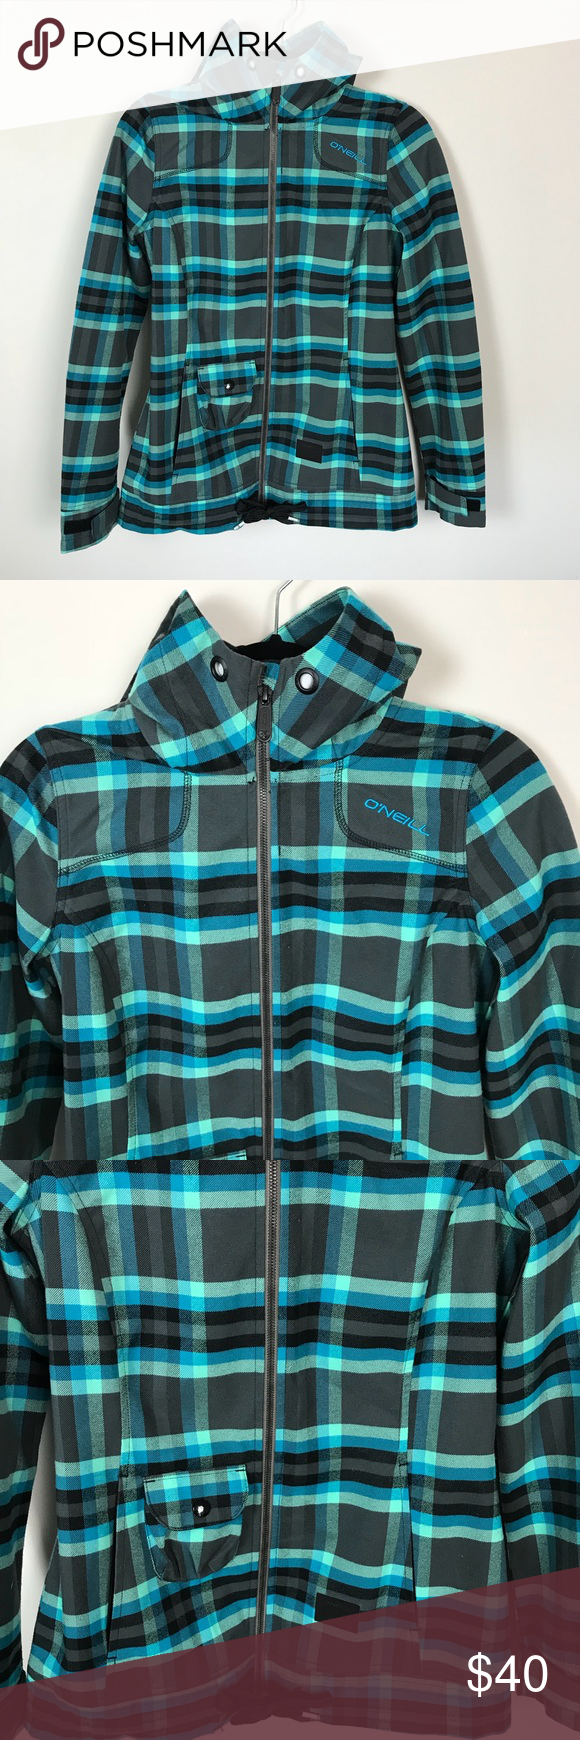 O Neill Plaid Relaxed Fit Zip Up Jacket Clothes Design Relaxed Fit Fashion